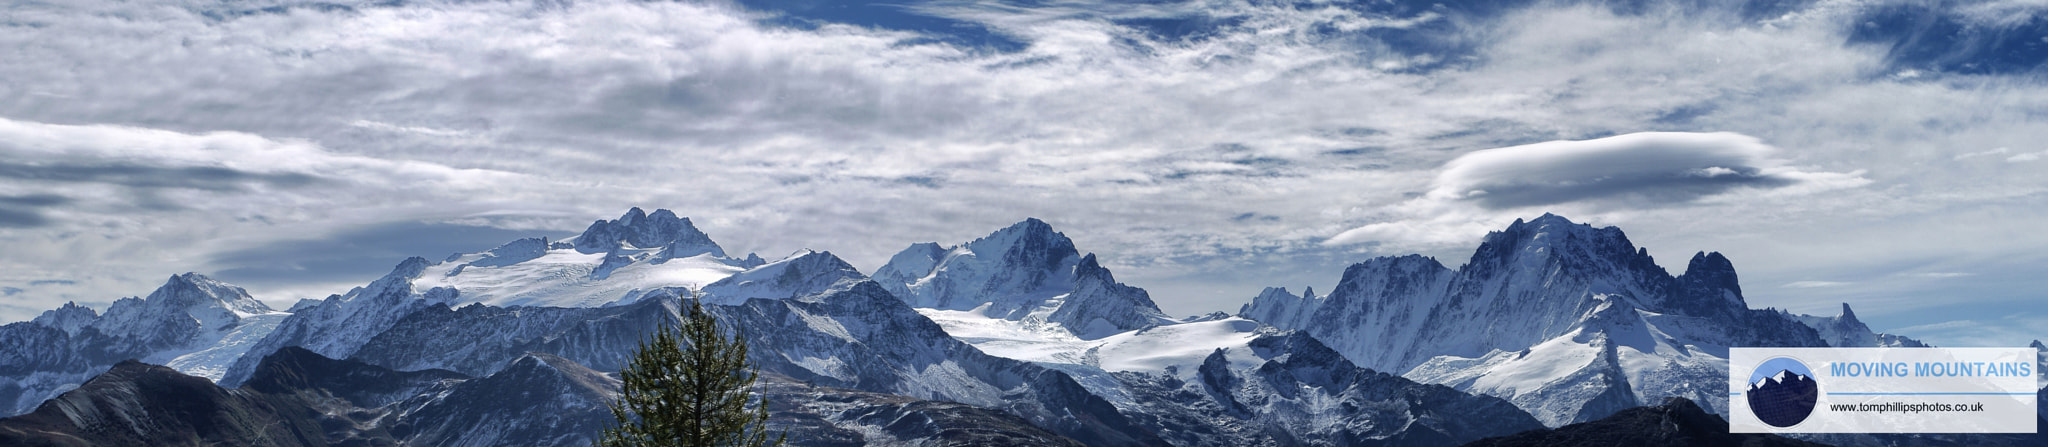 Photograph Eastern Mont Blanc Massif from the North by Tom Phillips on 500px